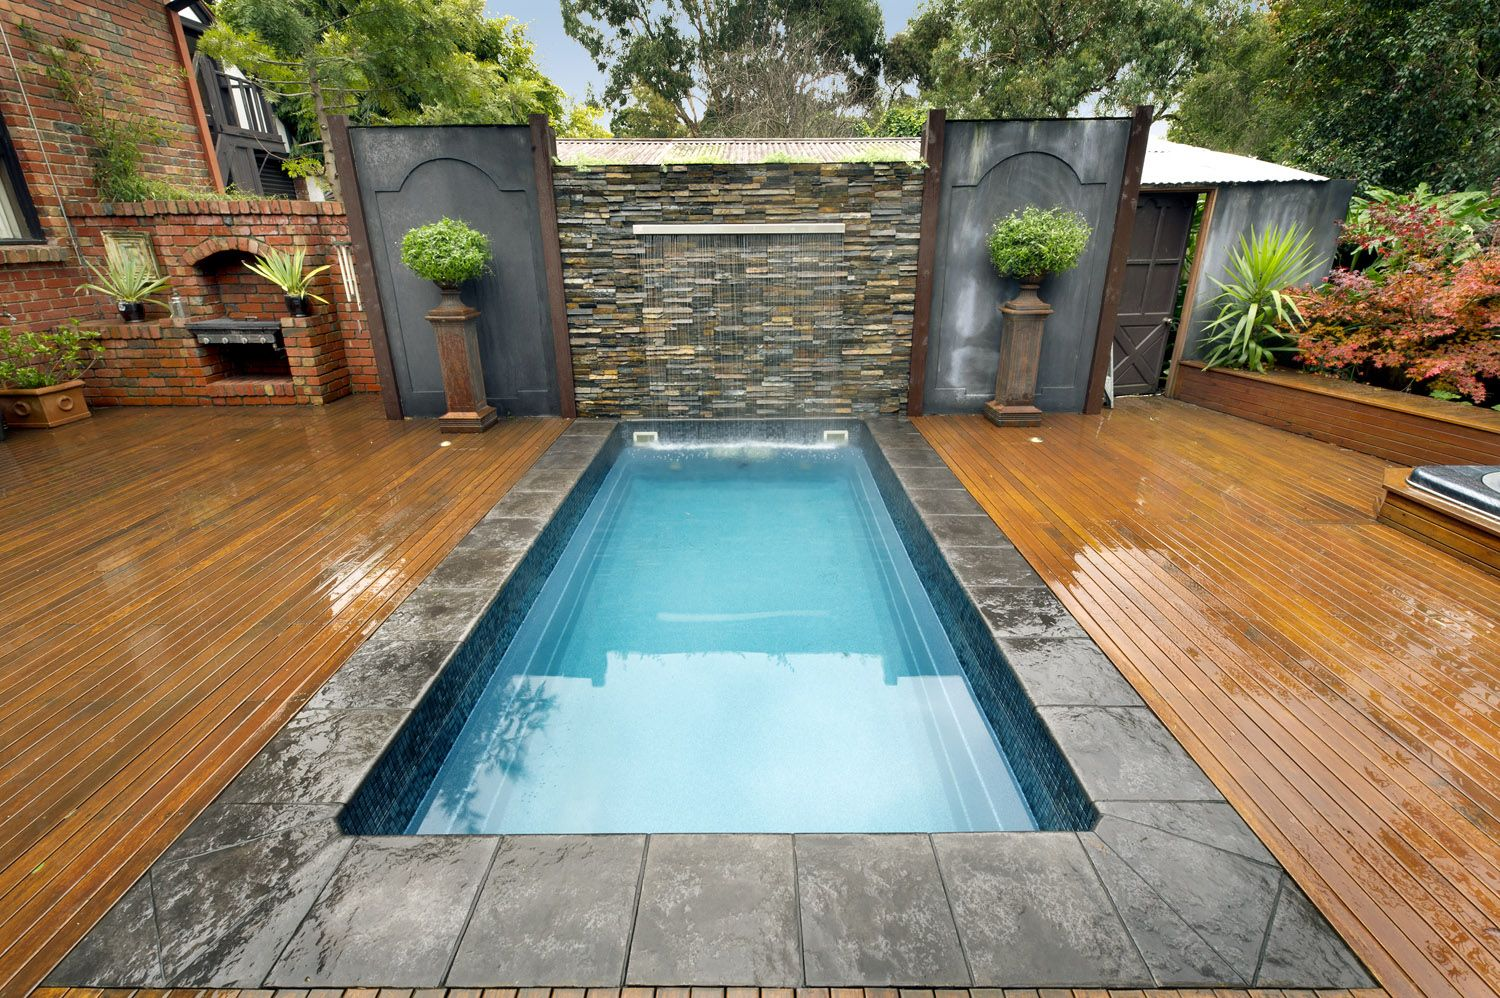 Pool Designs And Cost swimming pool designs and cost swimming pool designs and cost set Mural Of Plunge Pool Cost Estimation